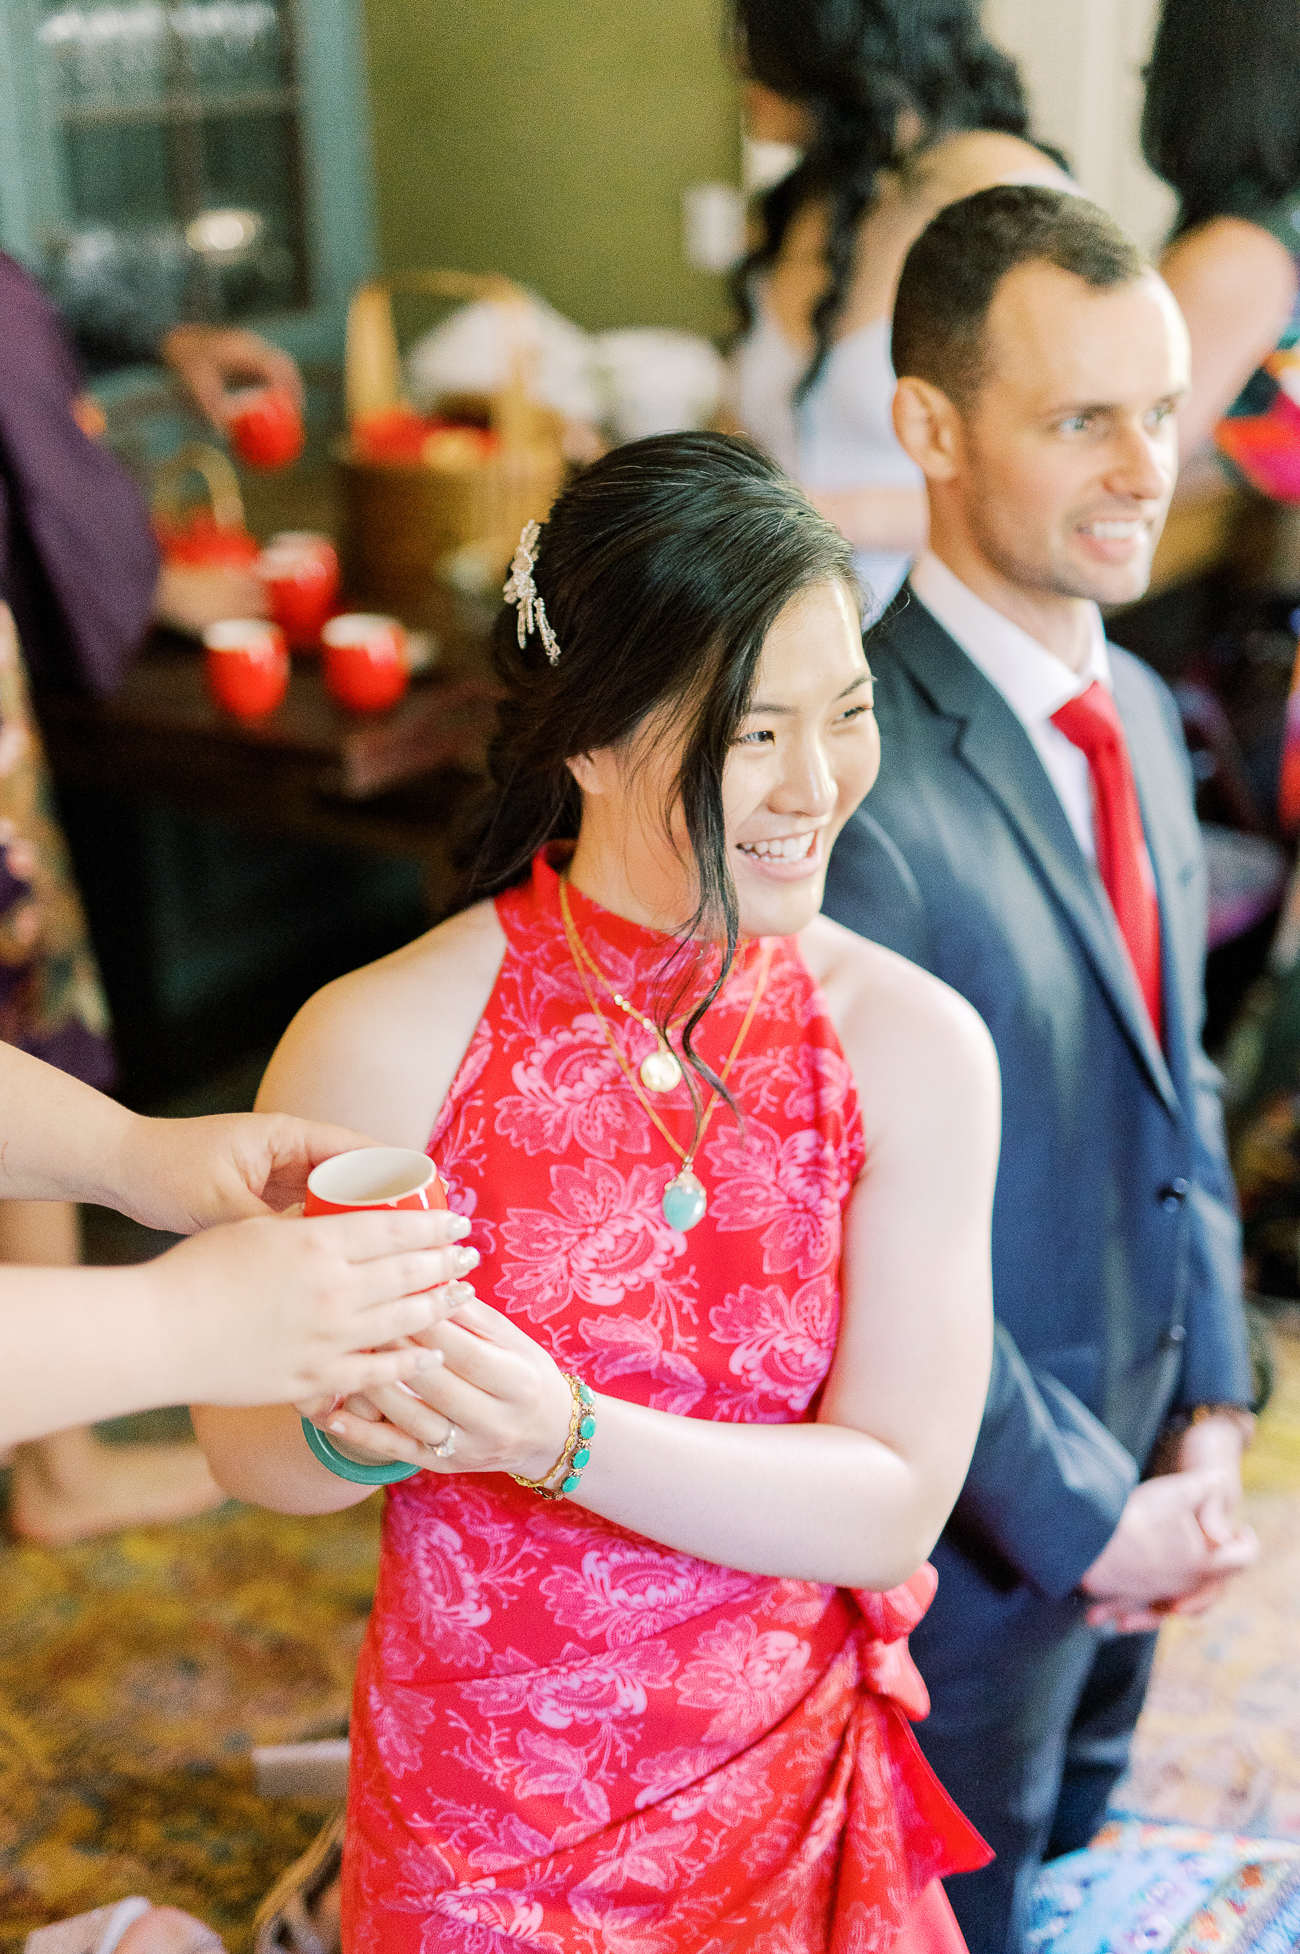 Passing tea to bride during Chinese tea ceremony